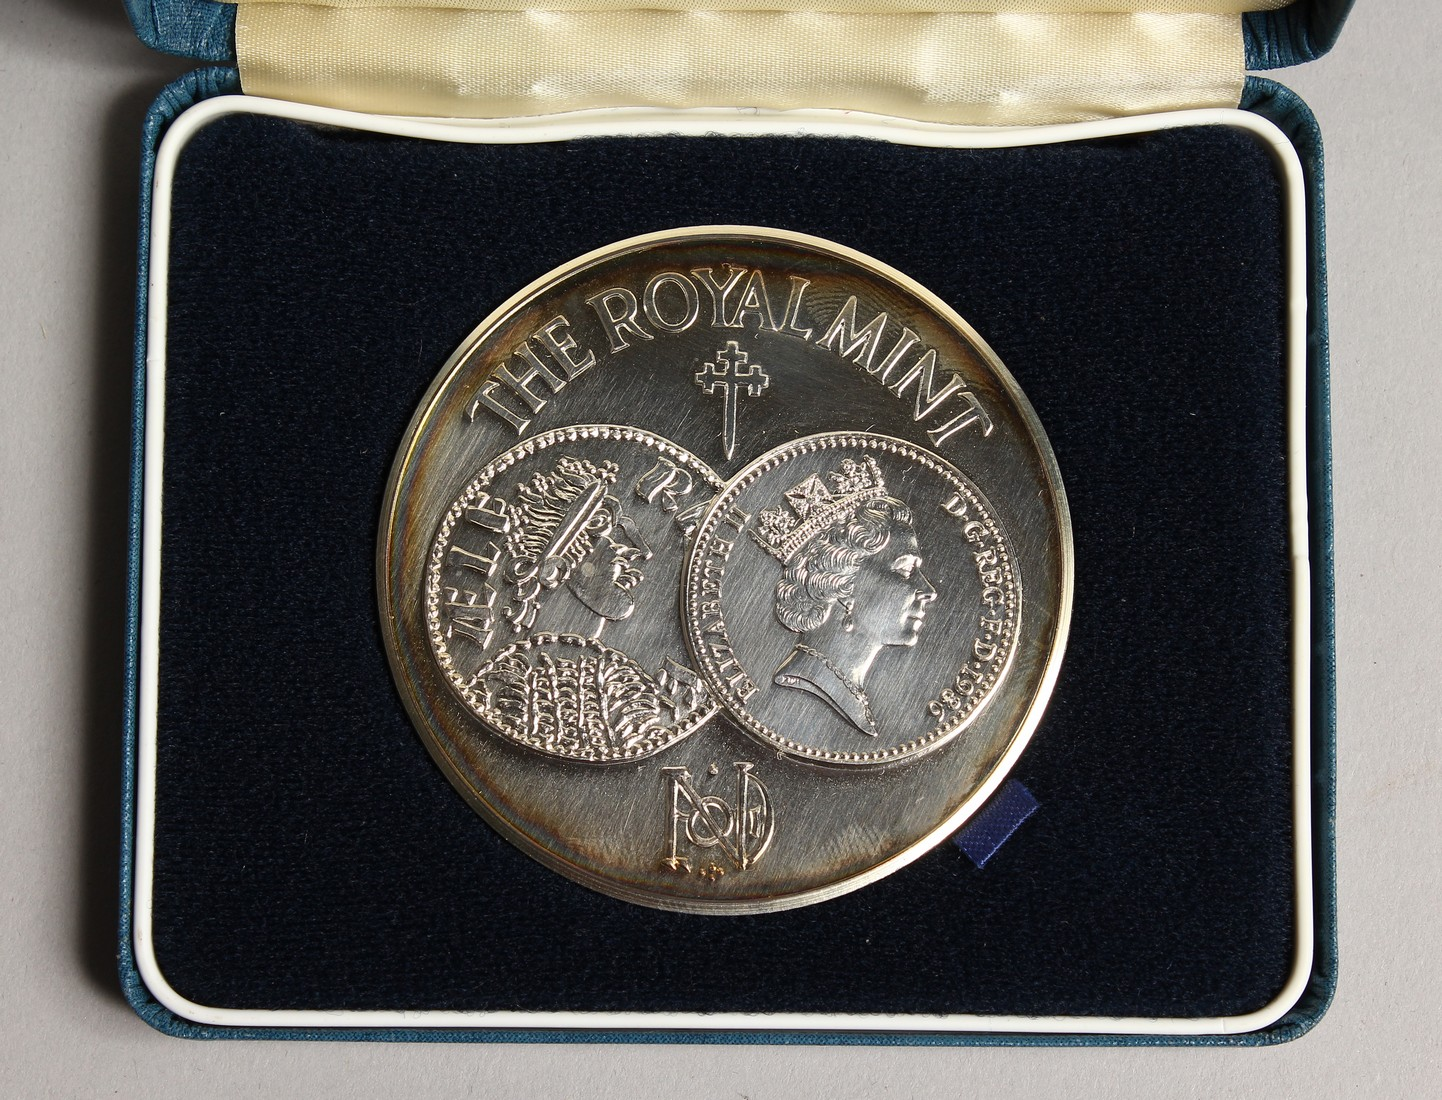 ONE HUNDRED YEARS IN MINTING, SILVER PROOF MEDALLION in a box issued by the Royal Mint, no.886